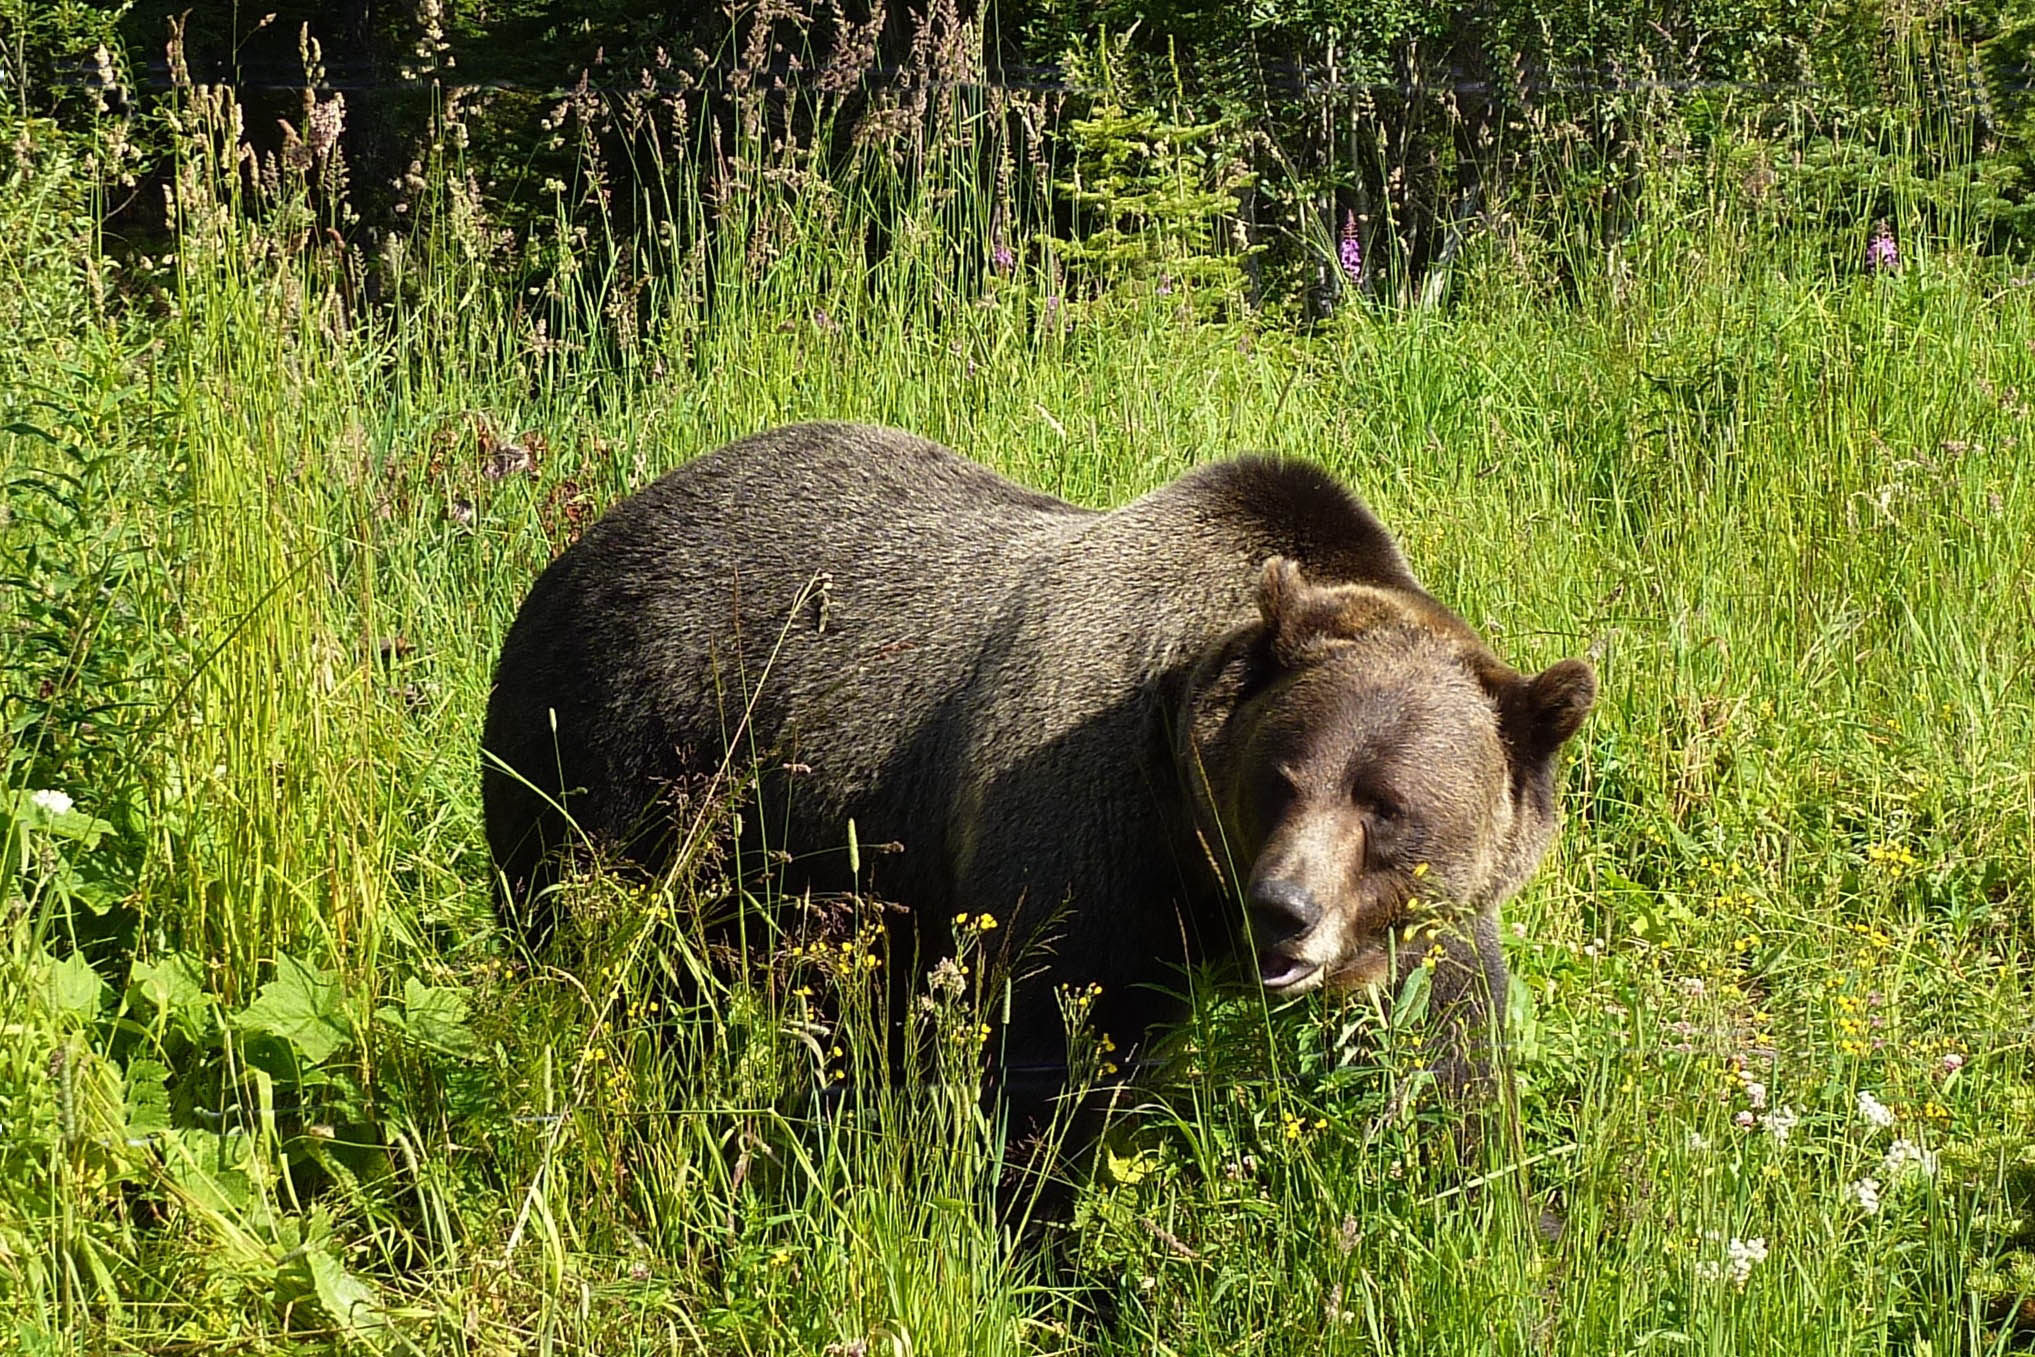 Grizzly bear in grass eating a piece of grass